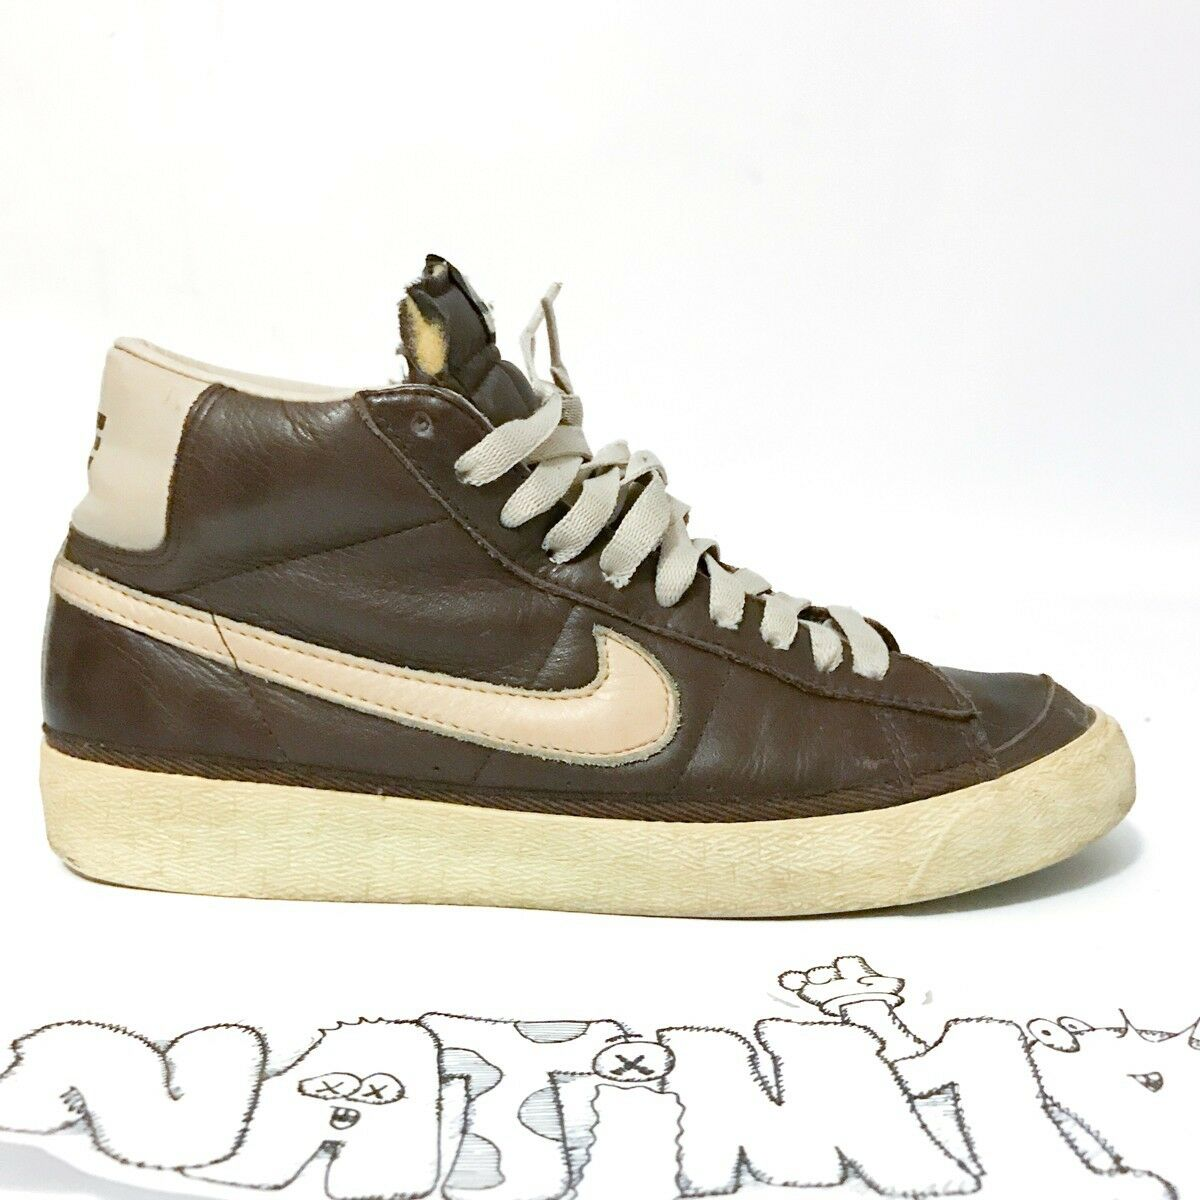 2002 Supreme Nike Off White Dunk BLAZER LEATHER Paul Brown Tennis Vans Wtaps